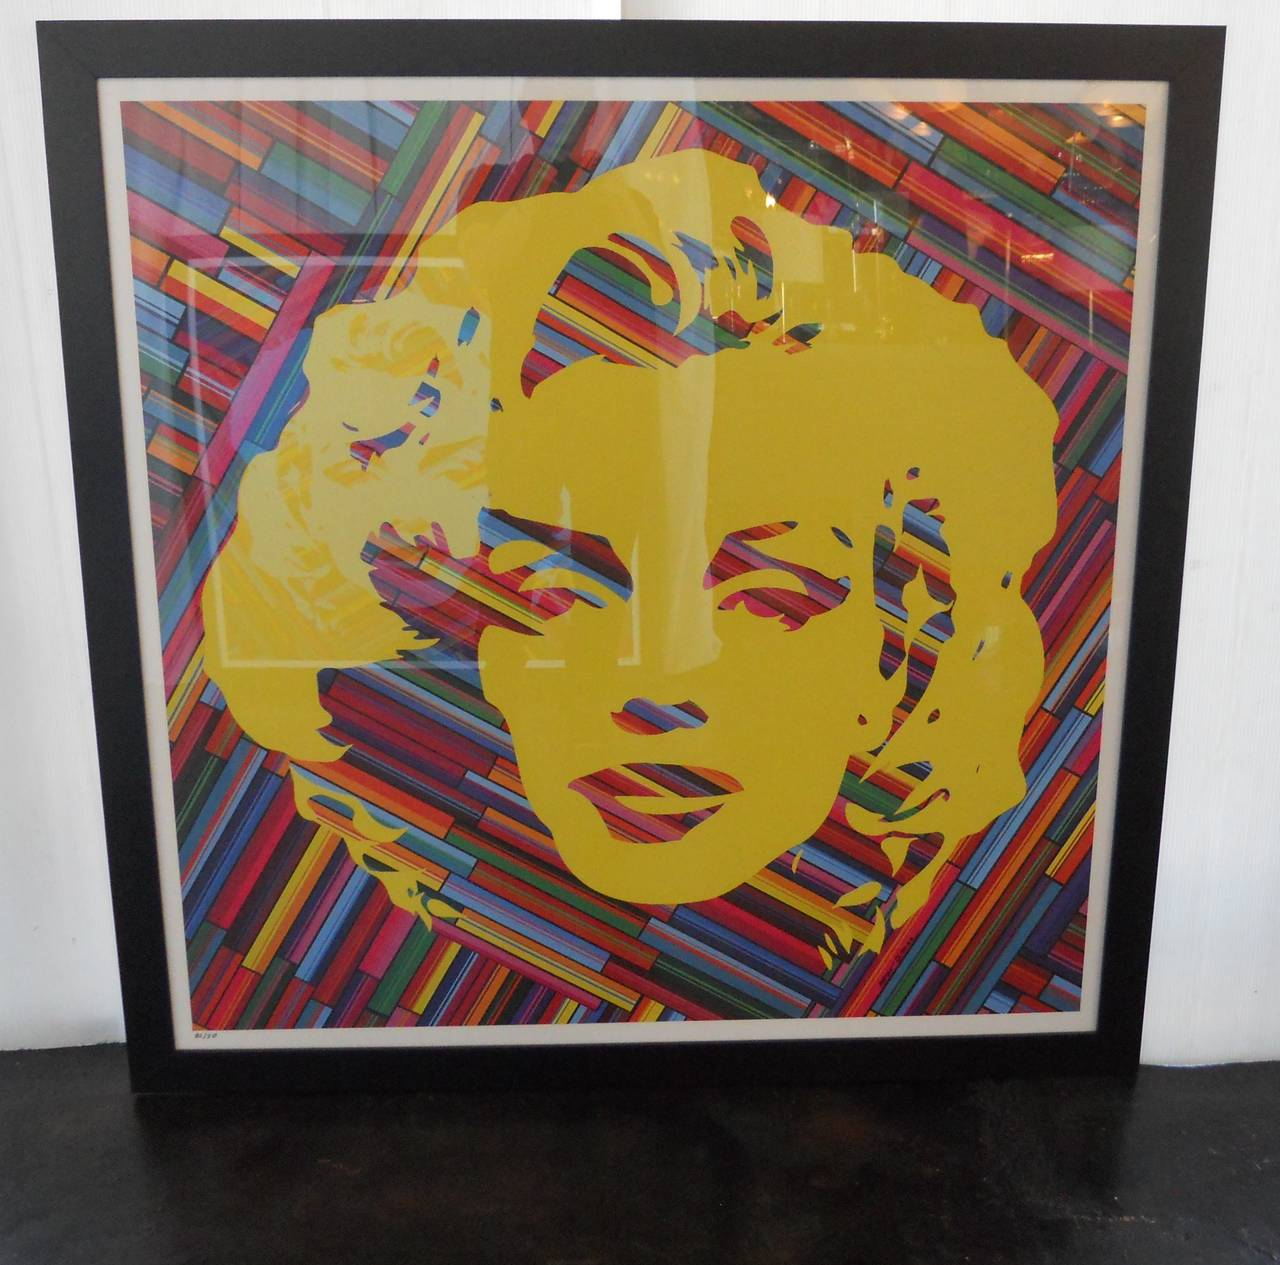 Set of Two Mauro Oliveira Marilyn Monroe Lithographs For Sale 3